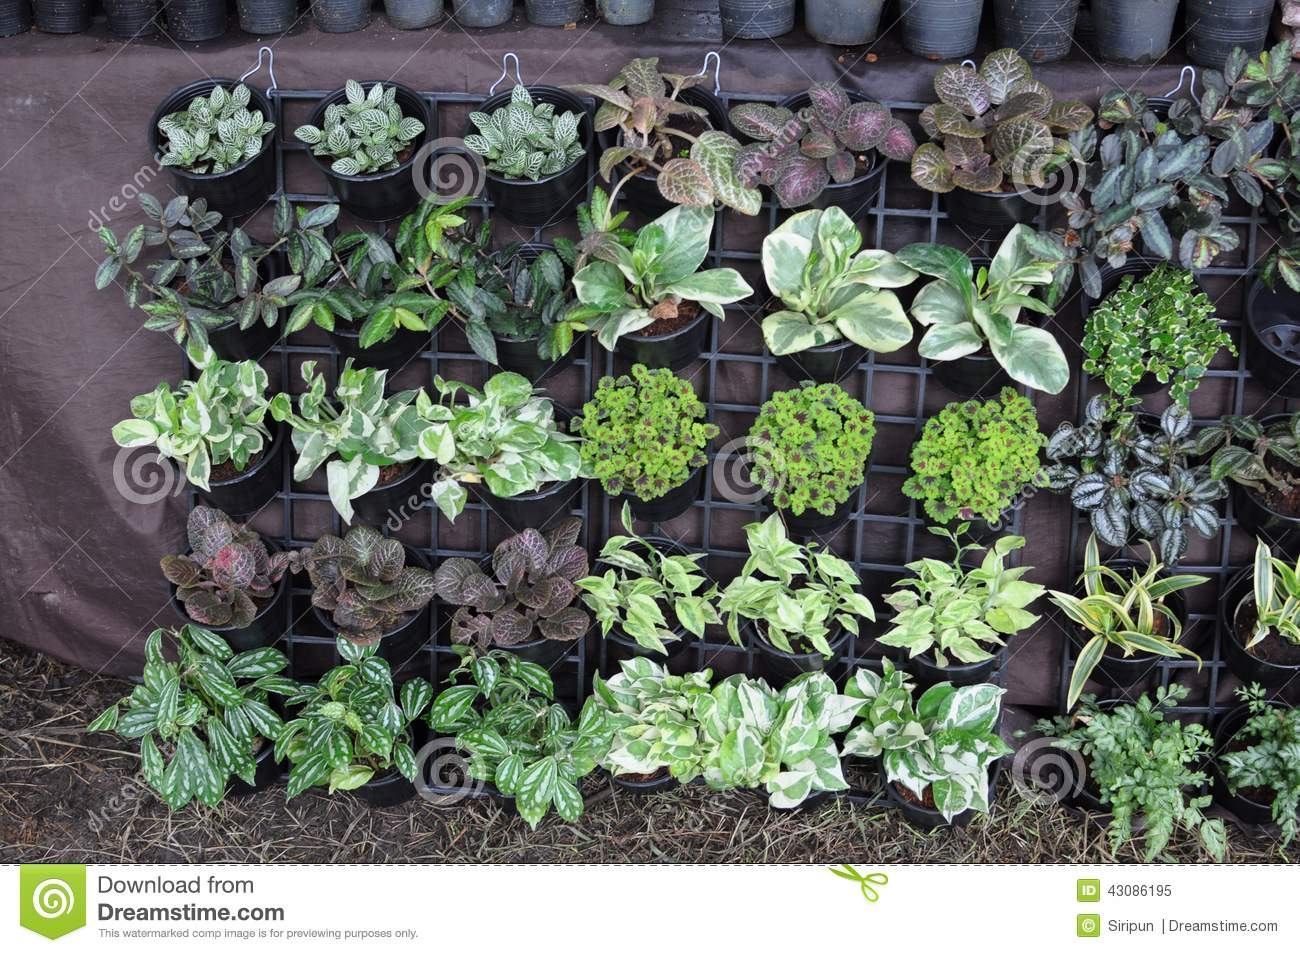 Garden Sale Garden Plants For Sale Stock Photo Image 43086195